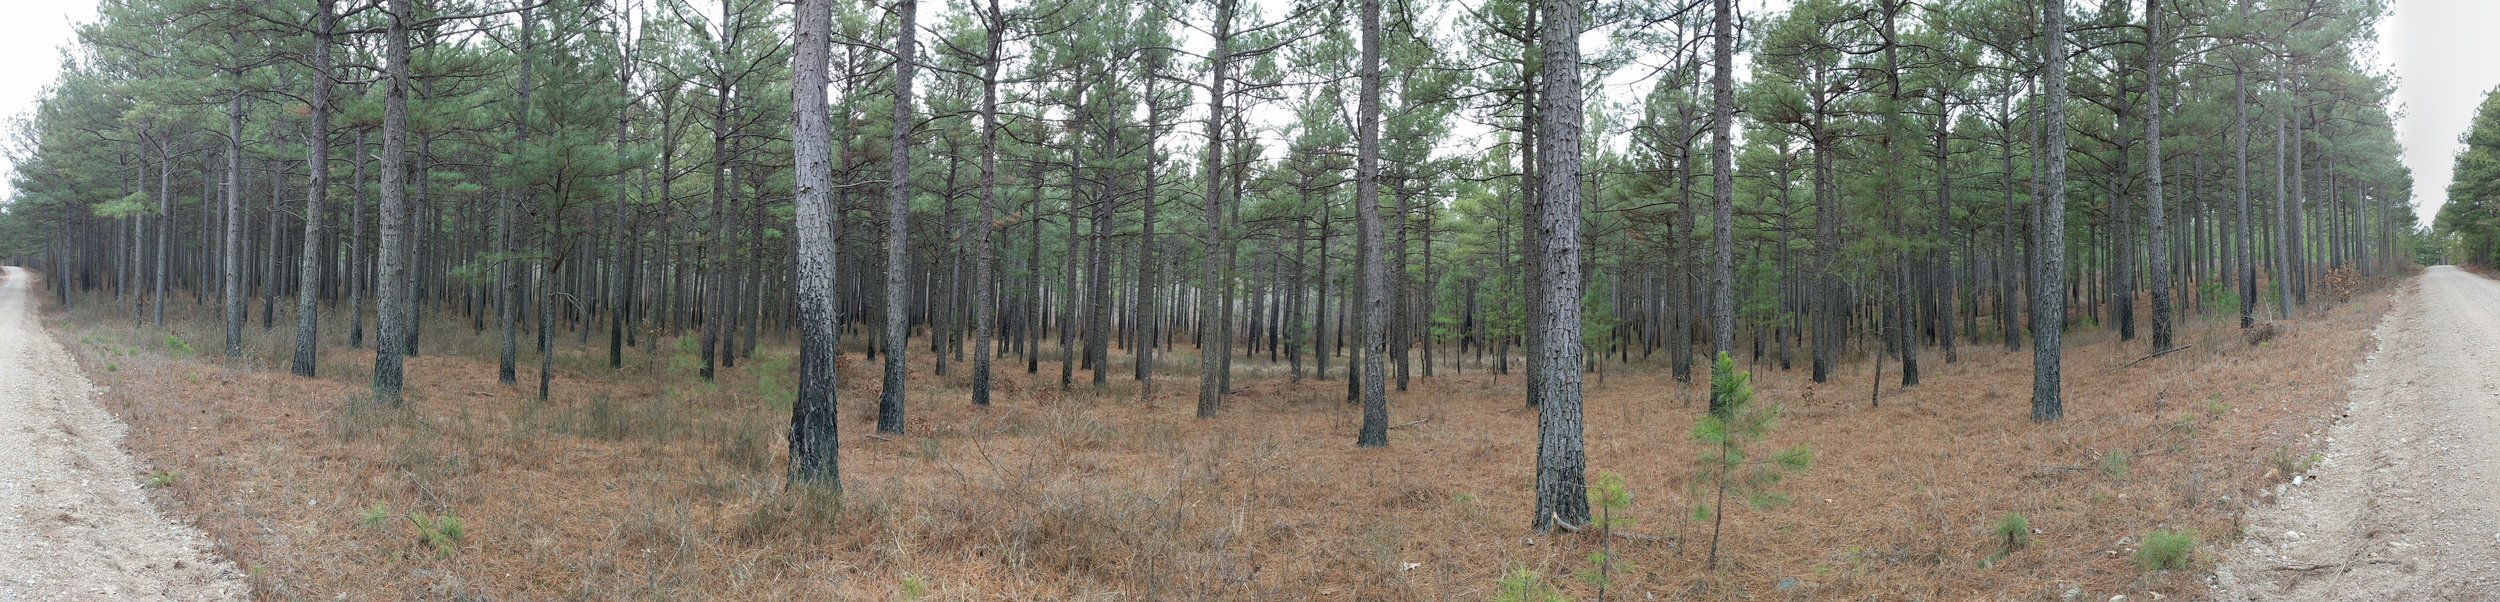 One of the many views of the Pine/conifer forests!